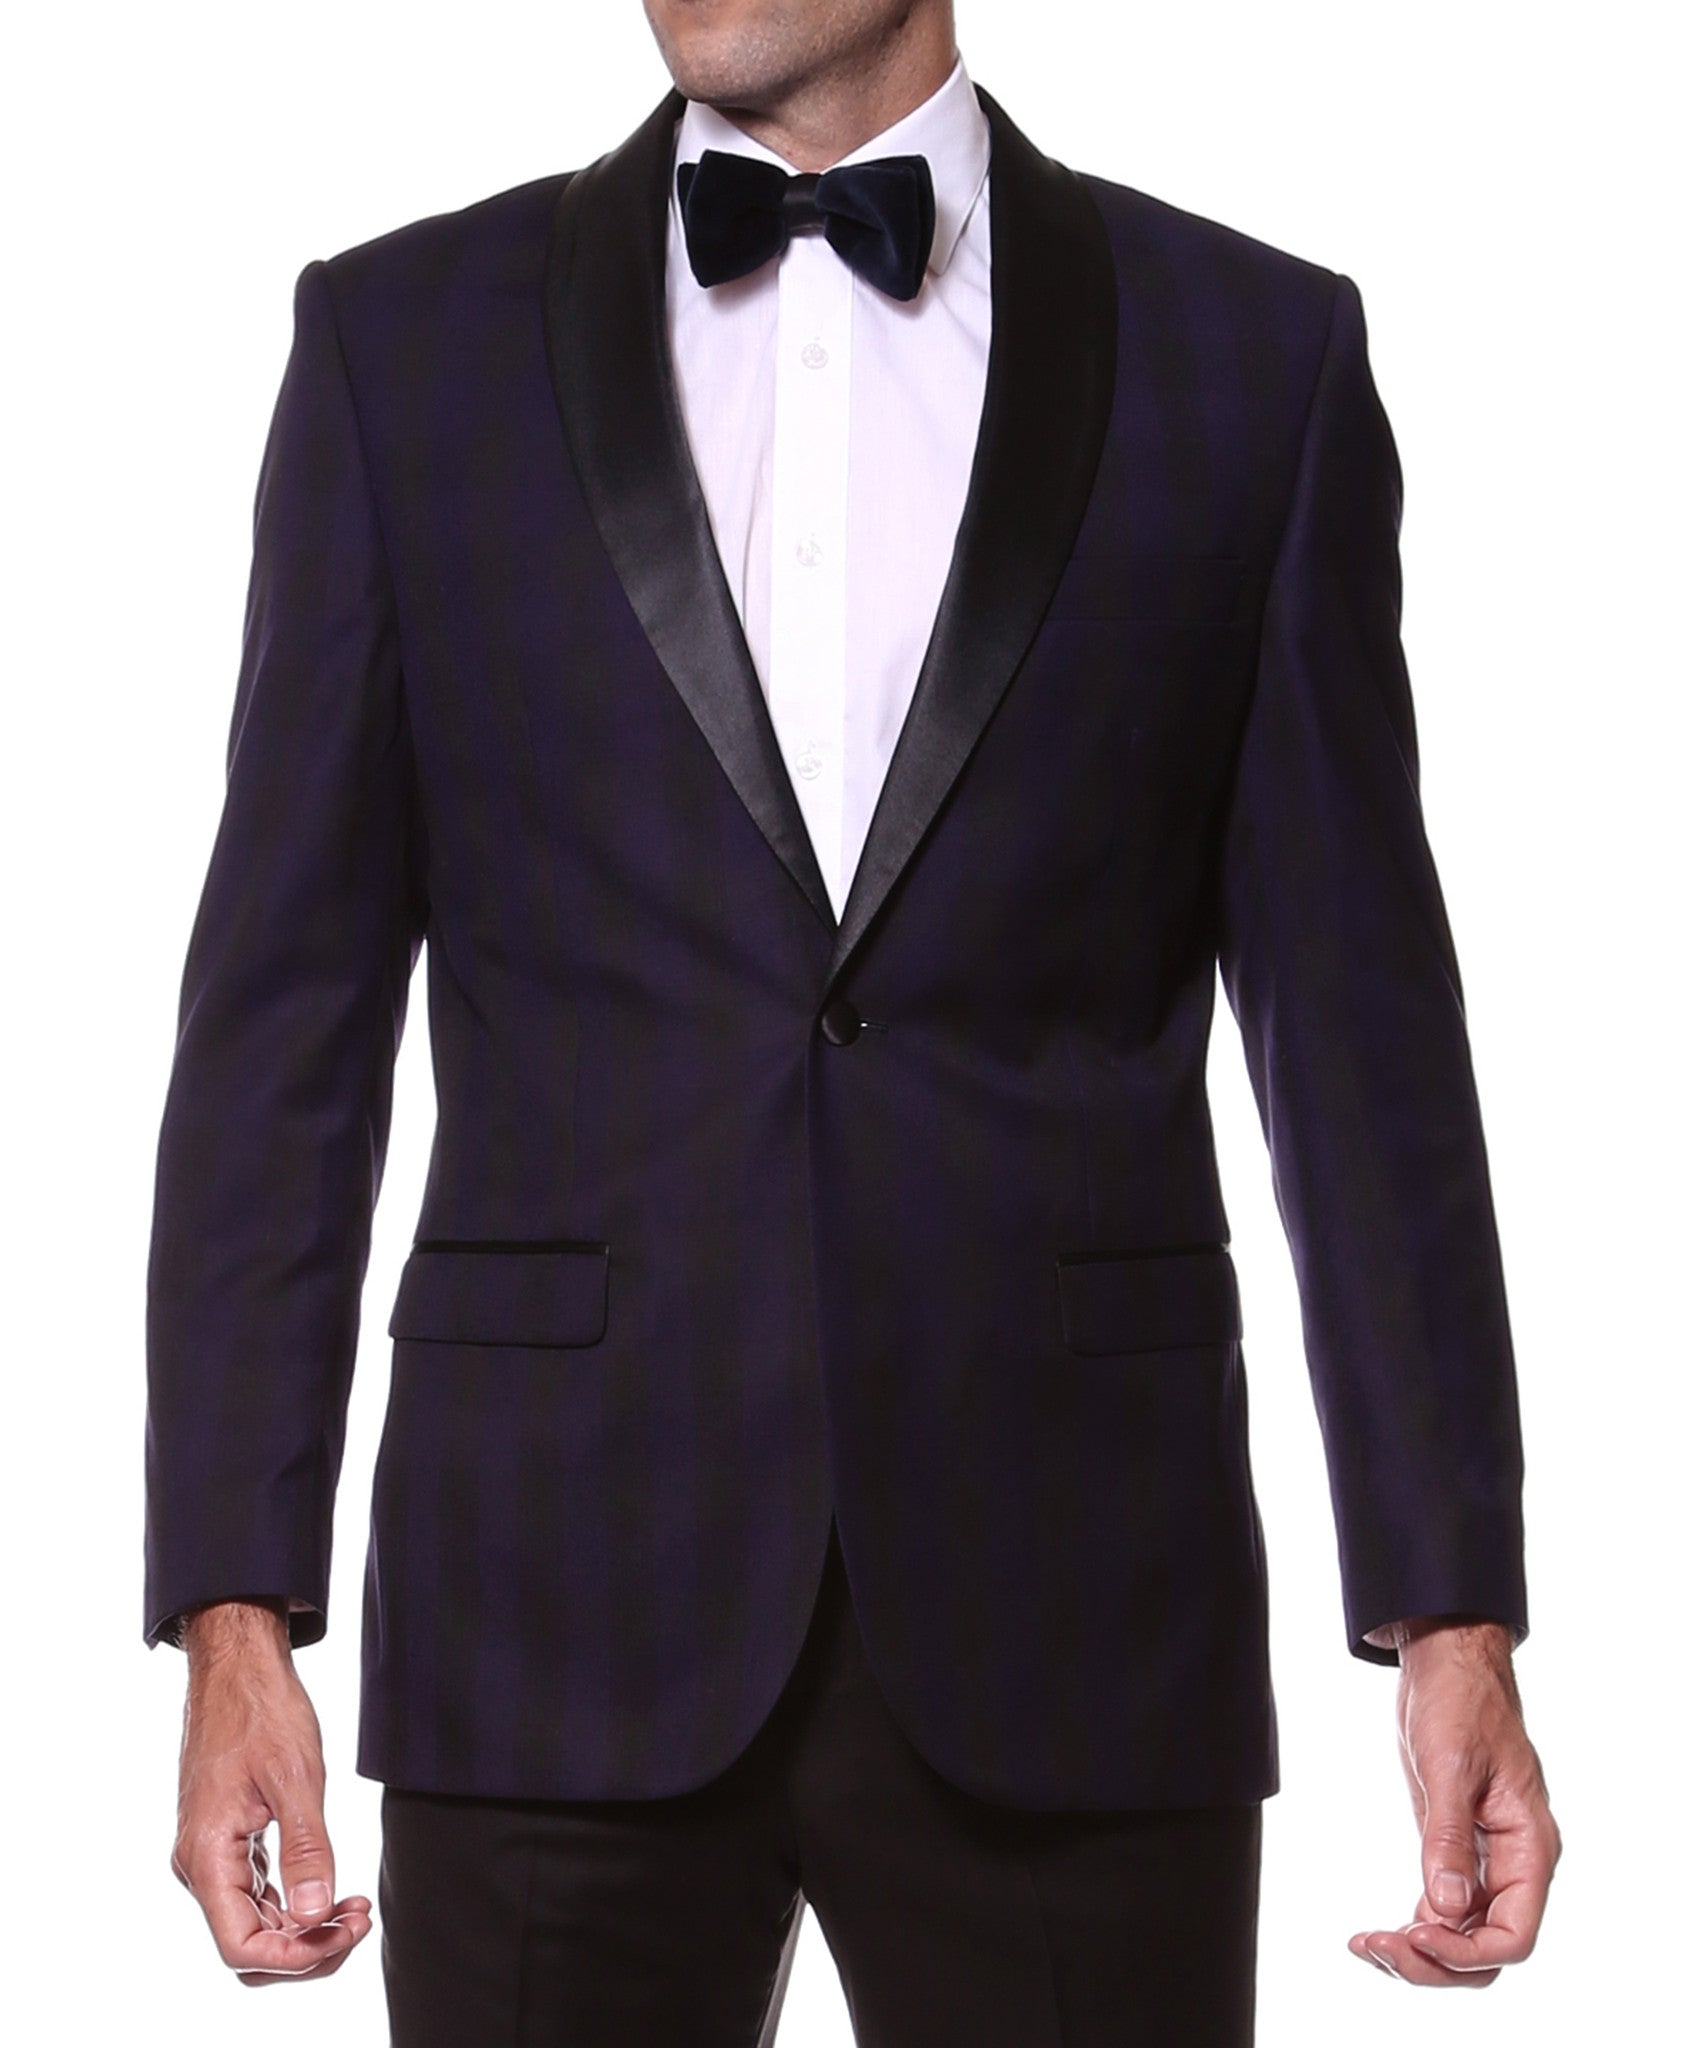 The Astor Purple Plaid Slim Shawl Tuxedo Blazer